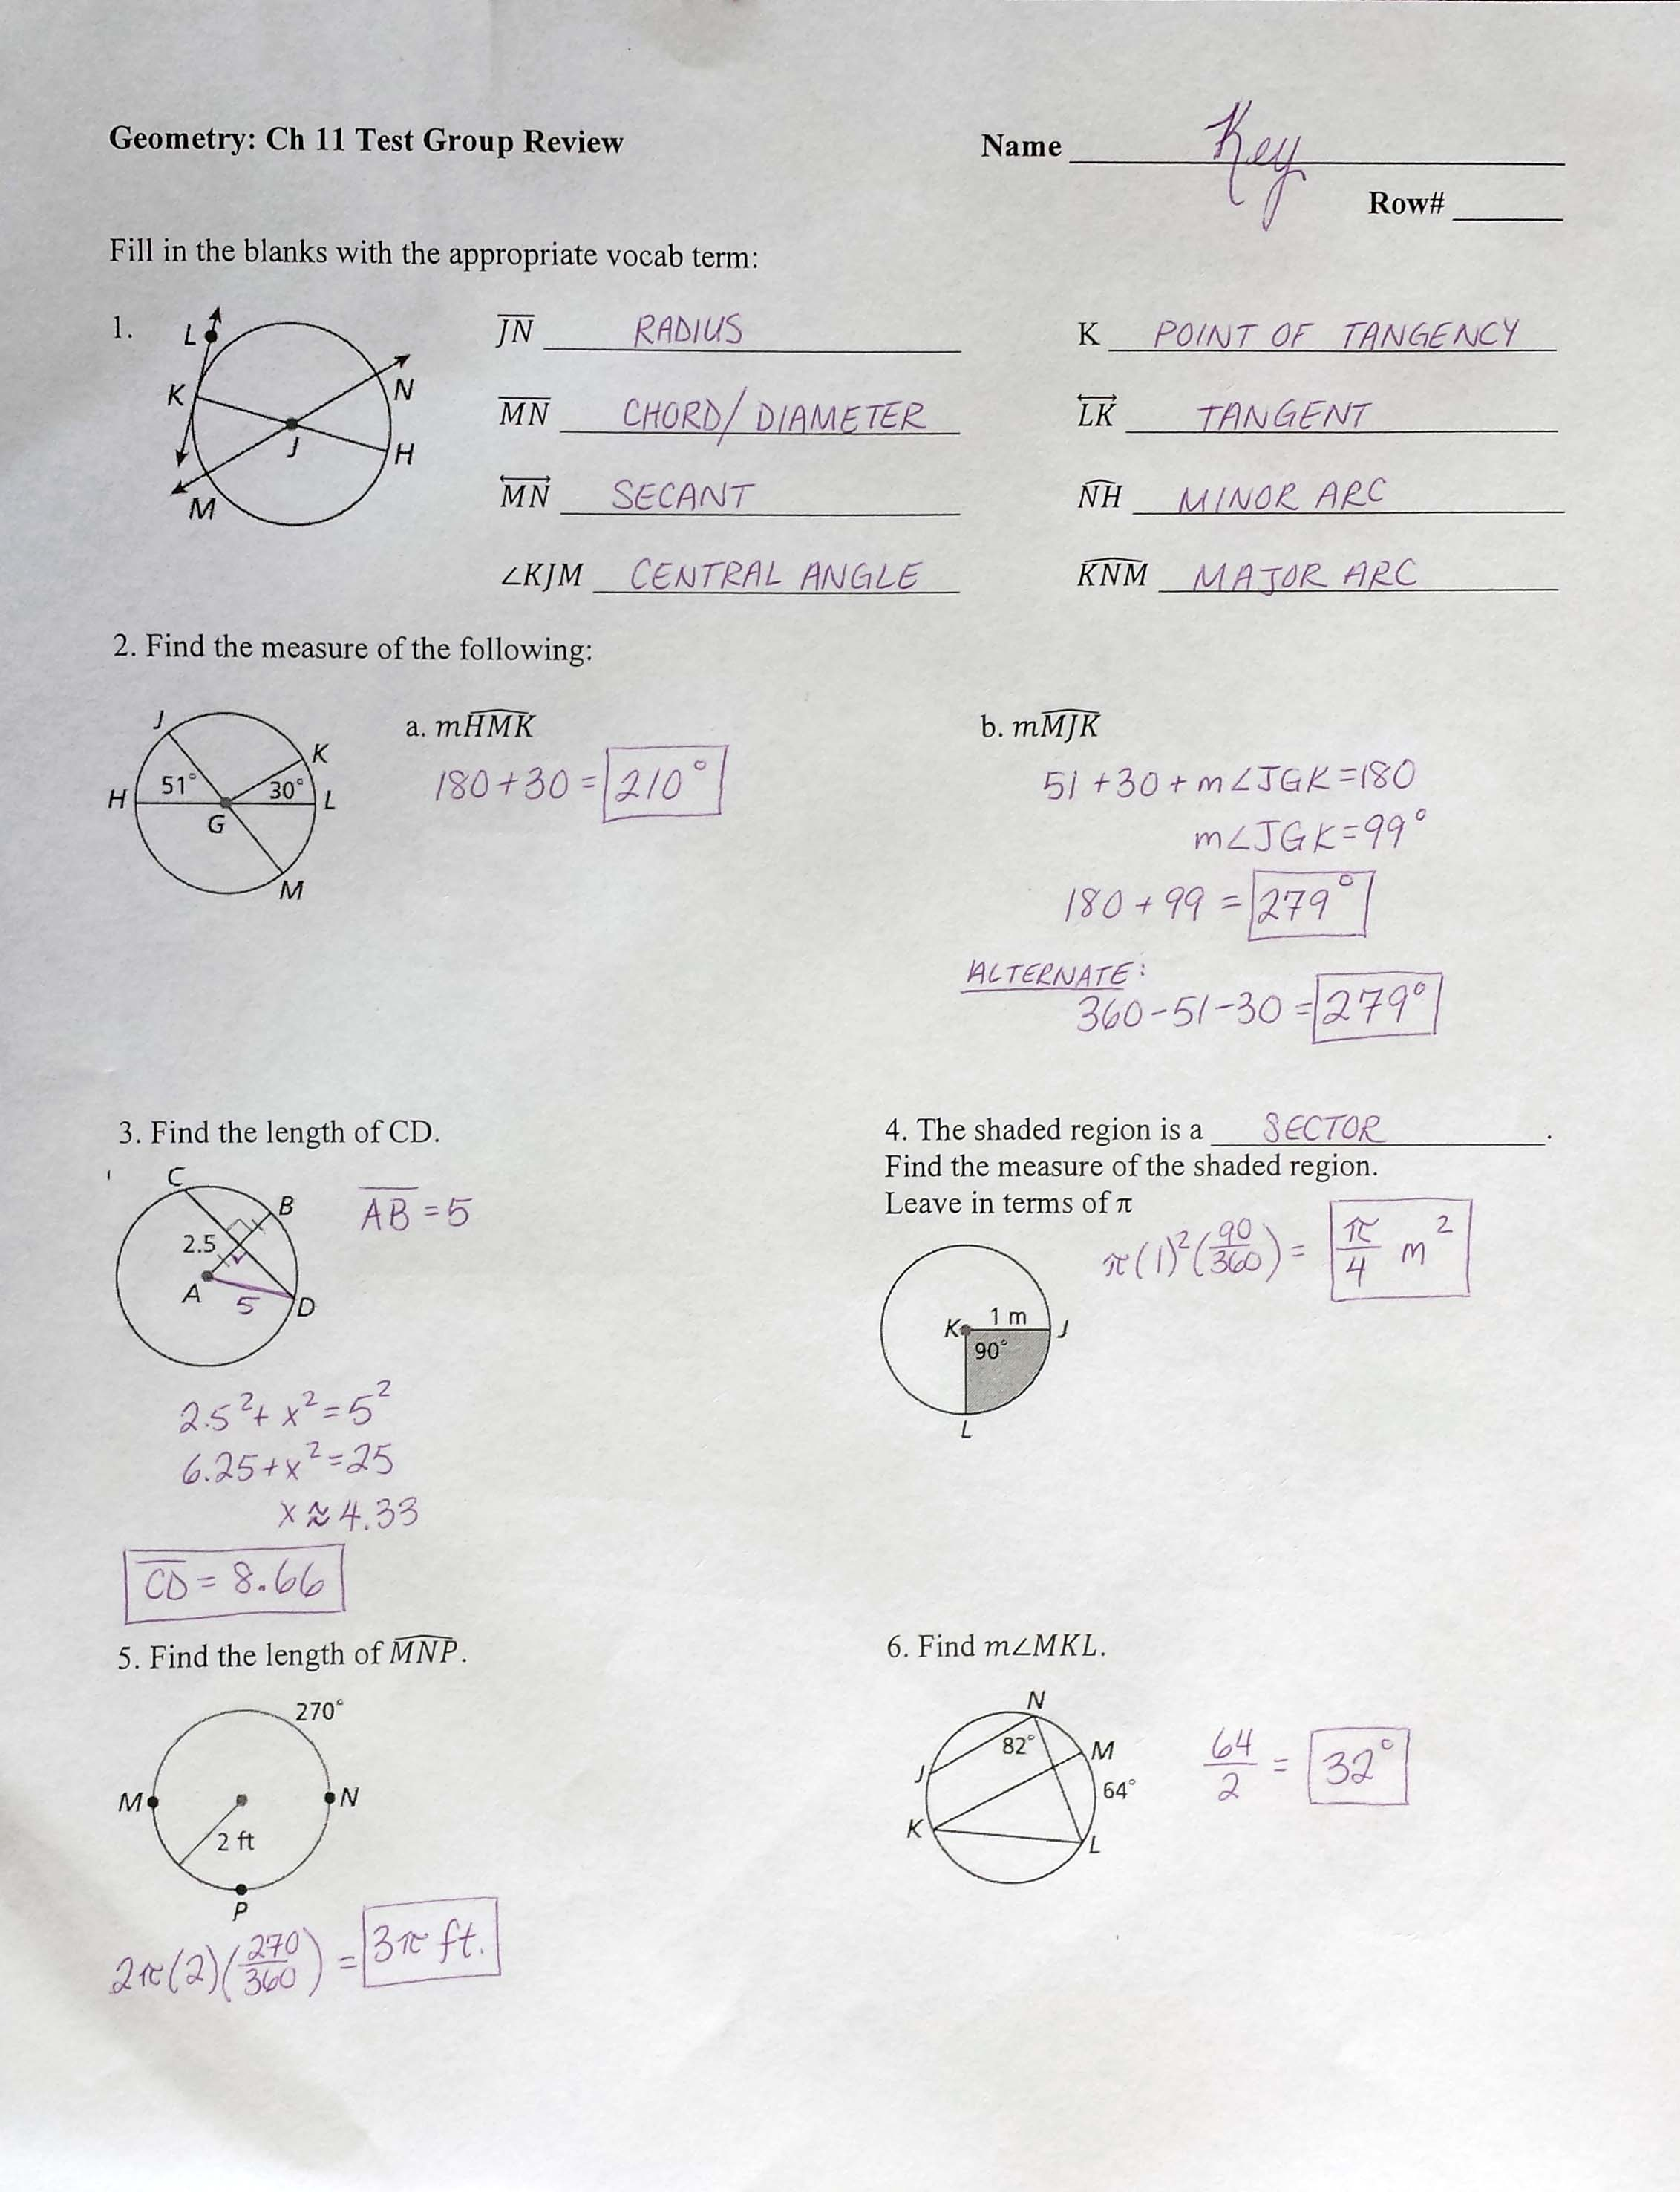 Bestseller Geometry Circles Test Answers